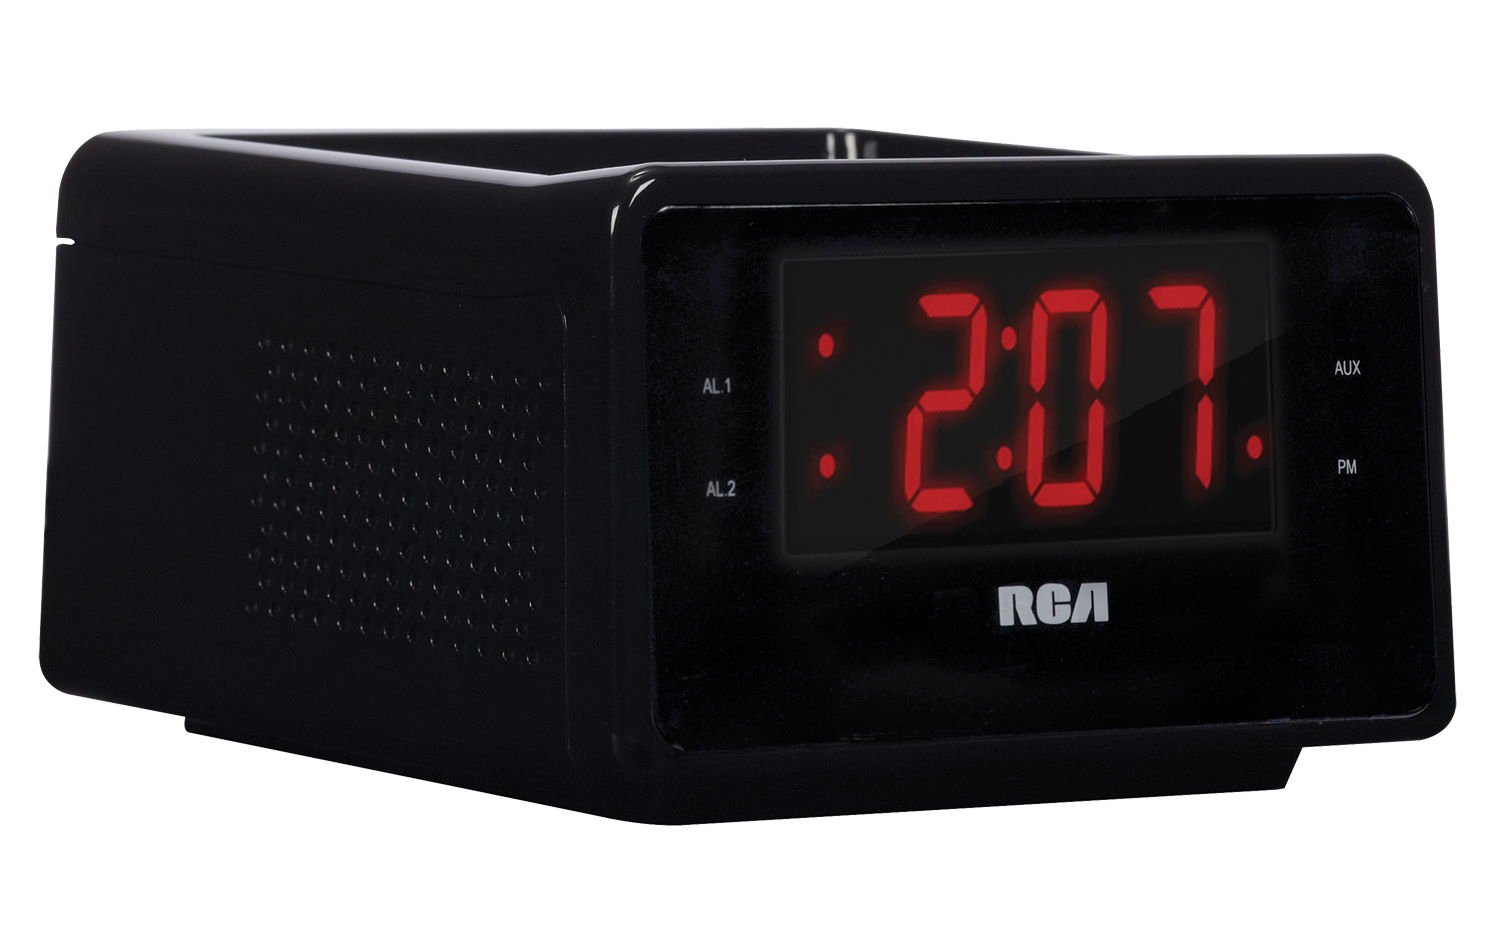 Audiovox RC127I Reloj Digital Negro - Radio (Reloj, Digital, iPhone,iPod, Negro): Amazon.es: Electrónica